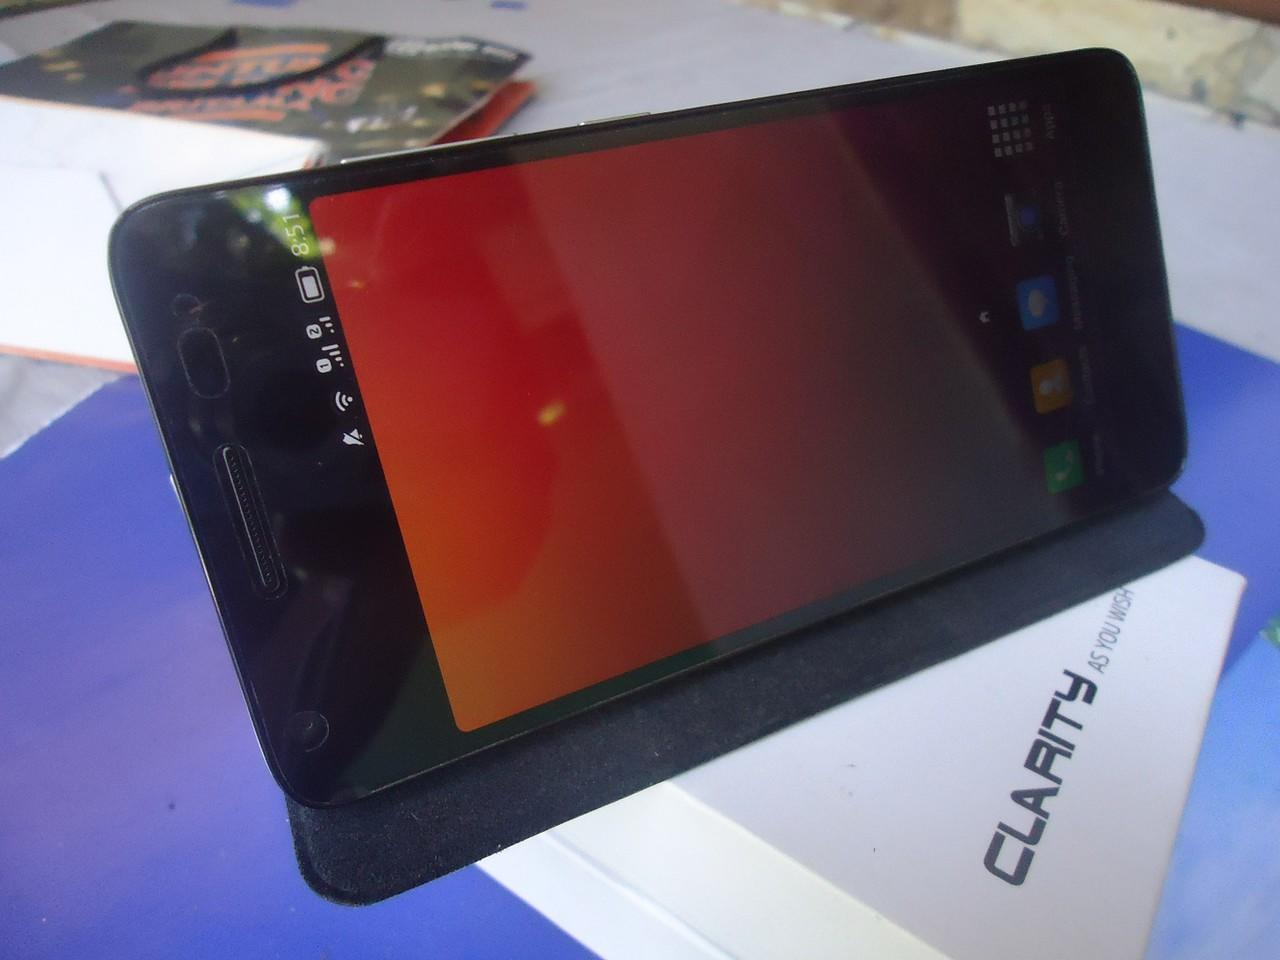 Jual IMO Clarity Q8 (Octacore 1.7GHz, RAM 2Gb, Camera 13MP + 5MP)